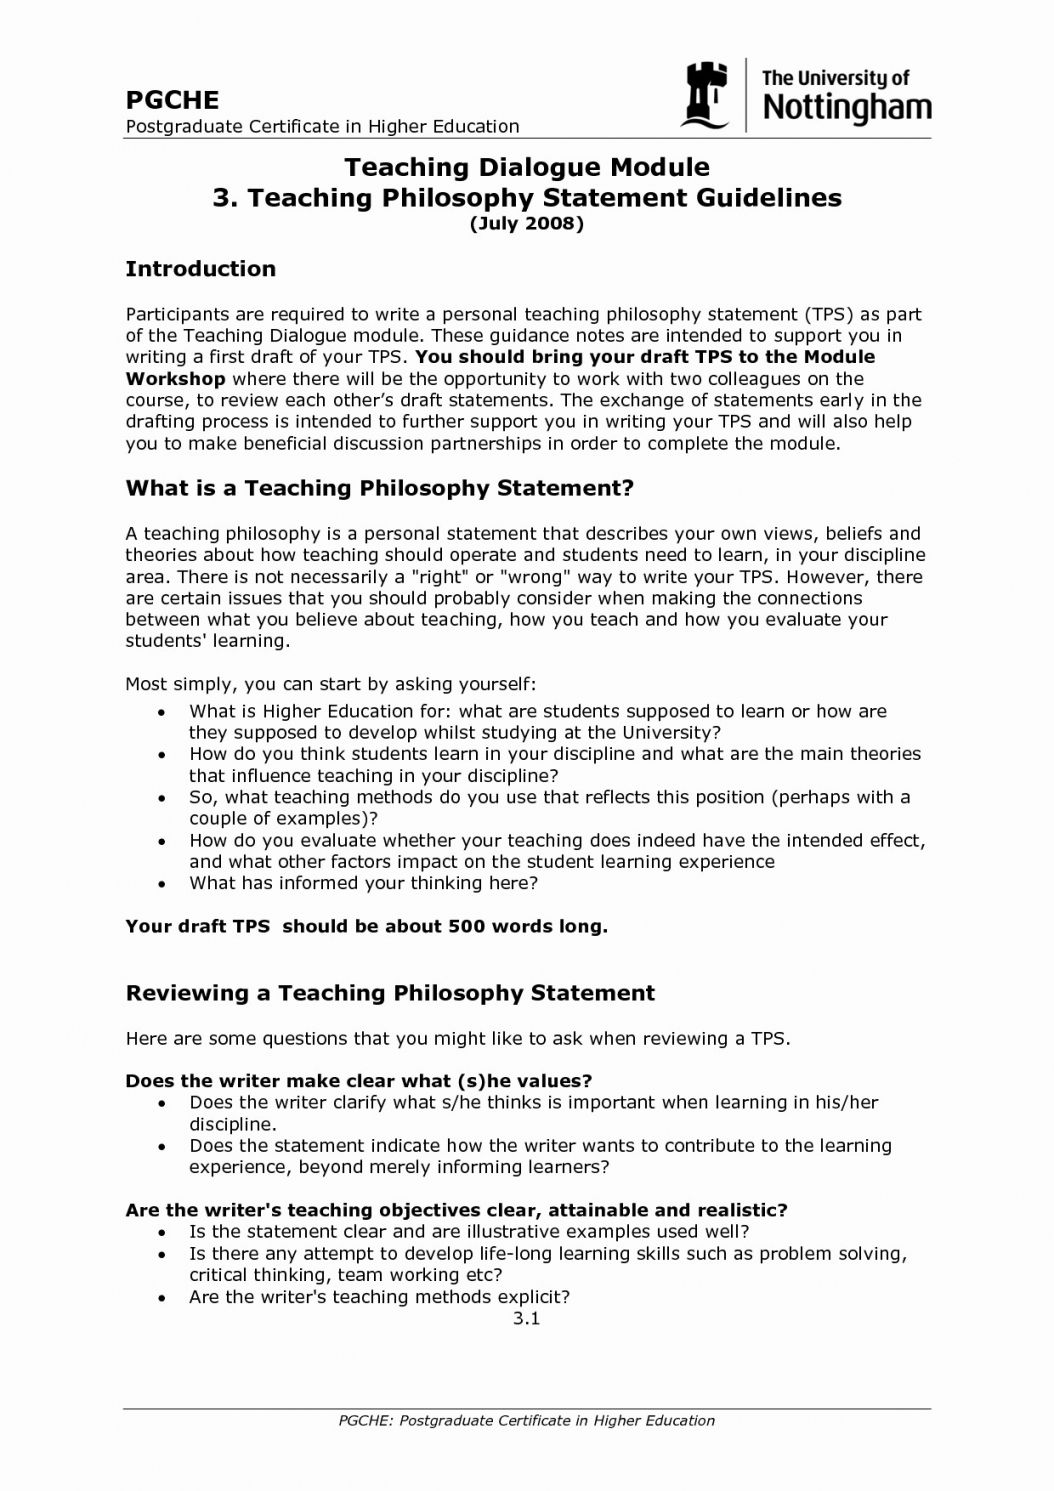 Cover Letter Template Tamu from i.pinimg.com